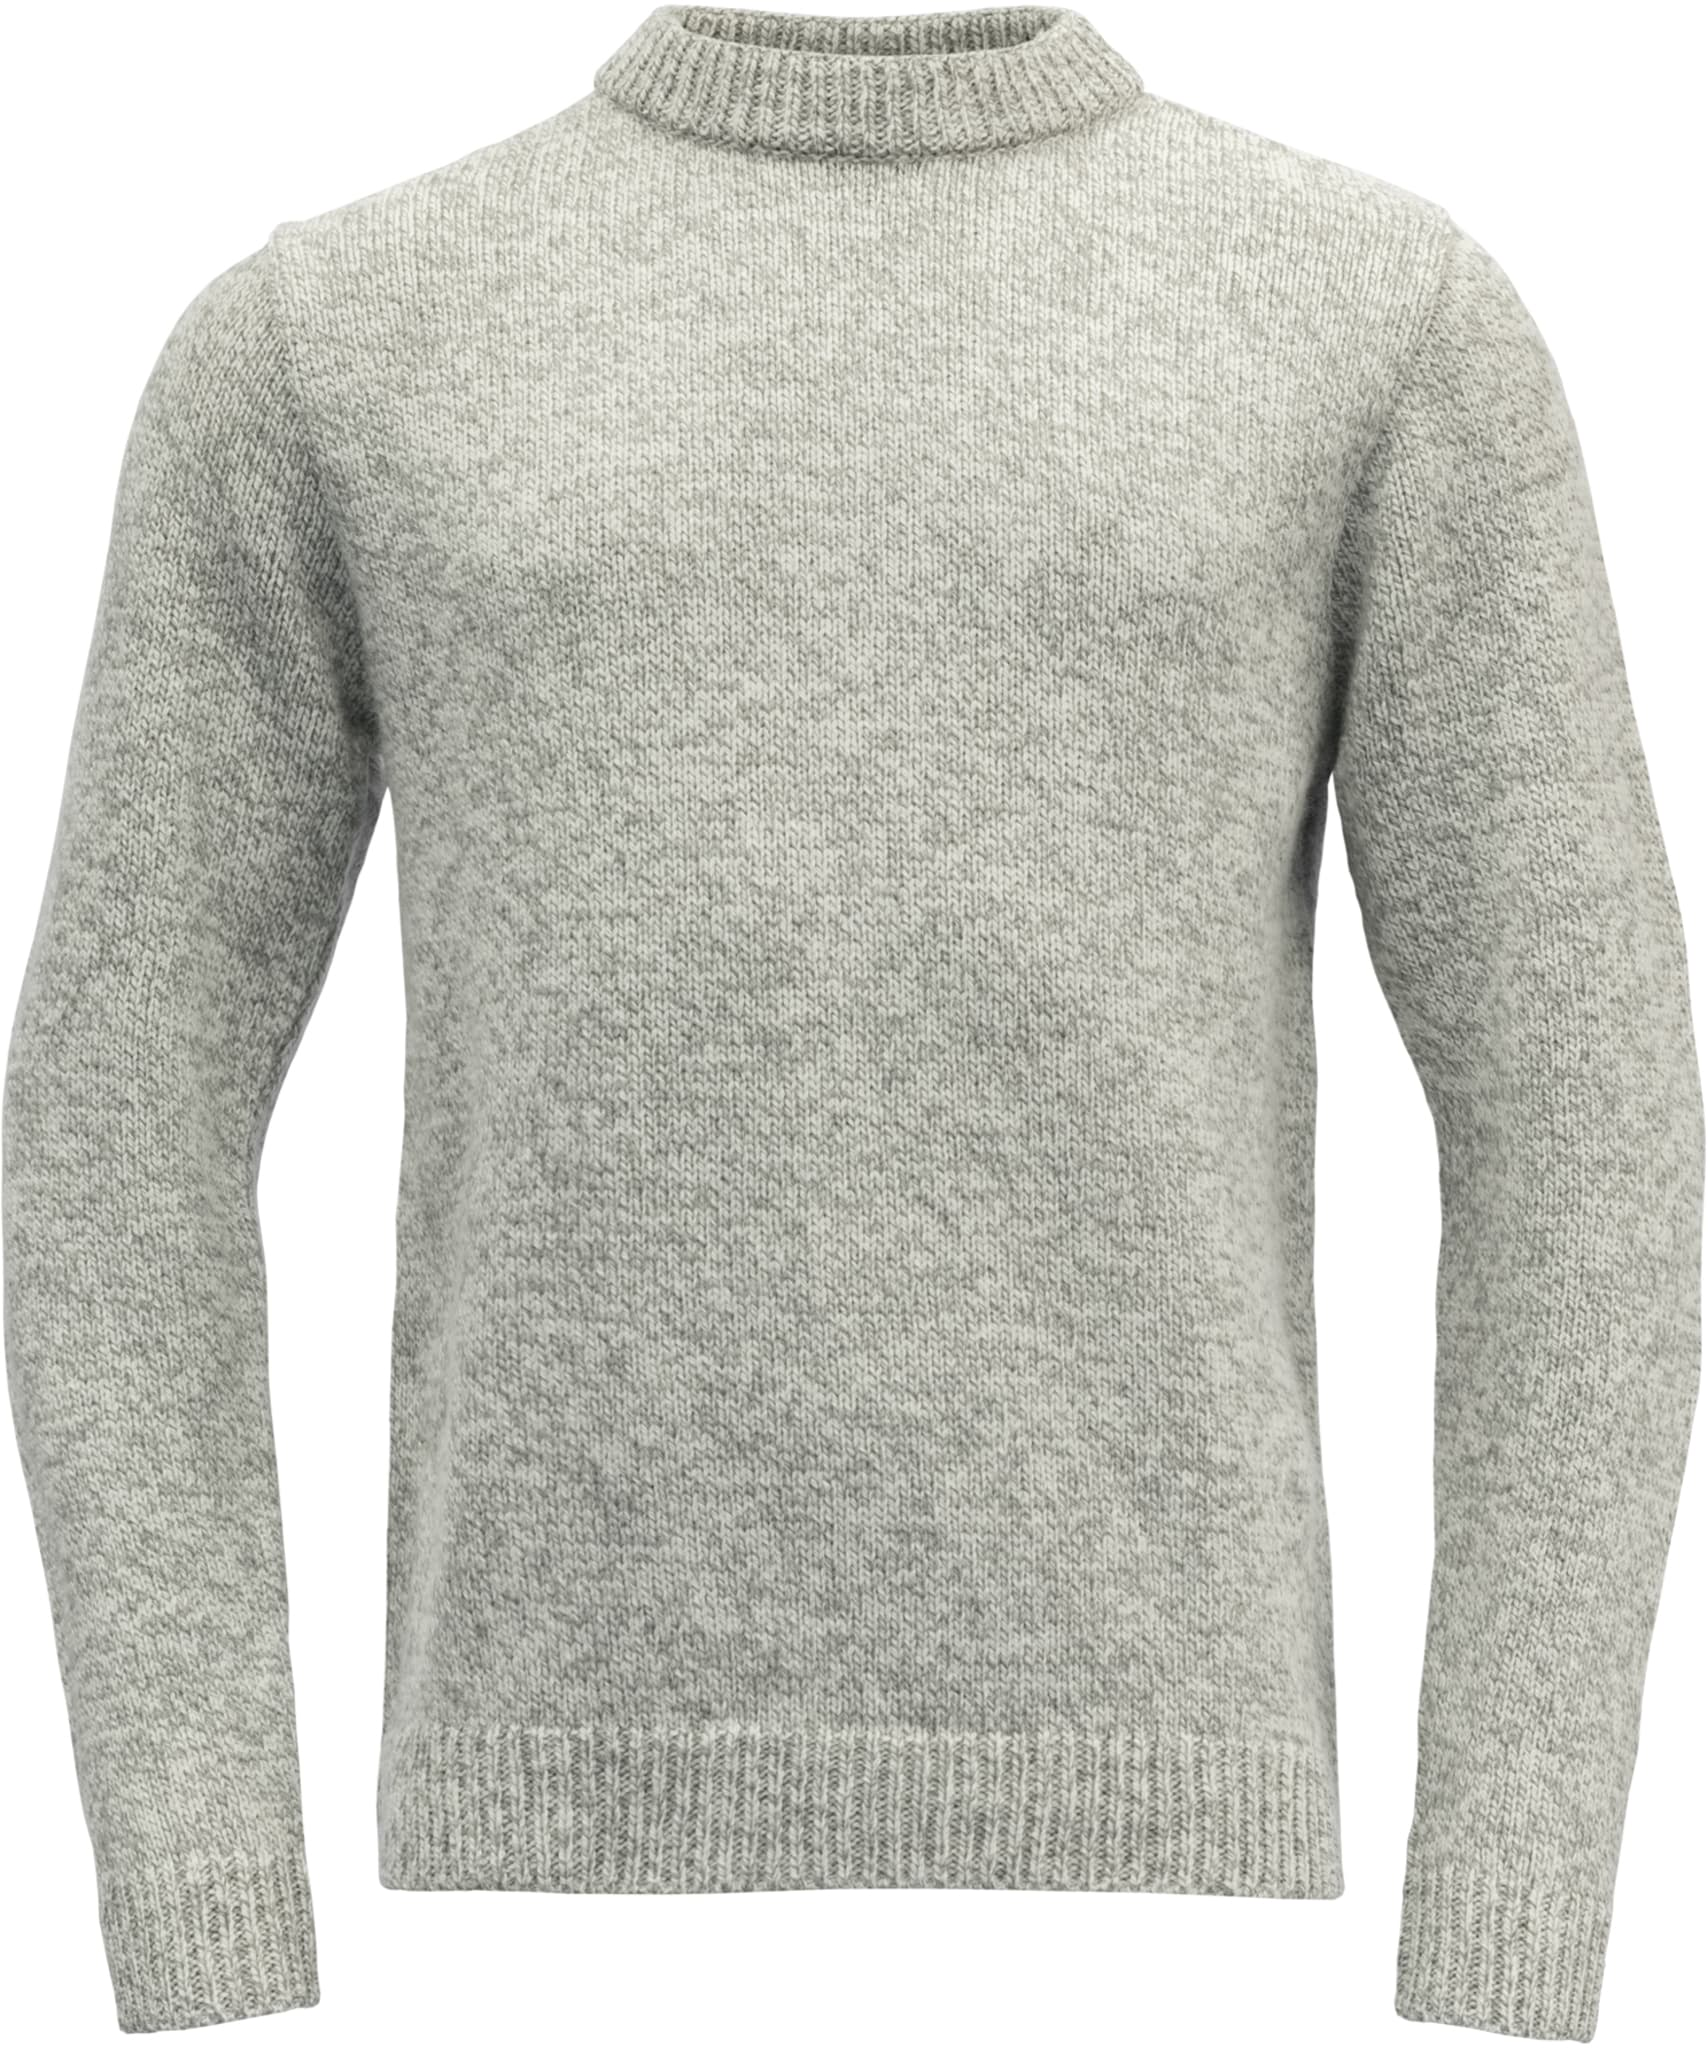 Arktis Sweater Crew Neck